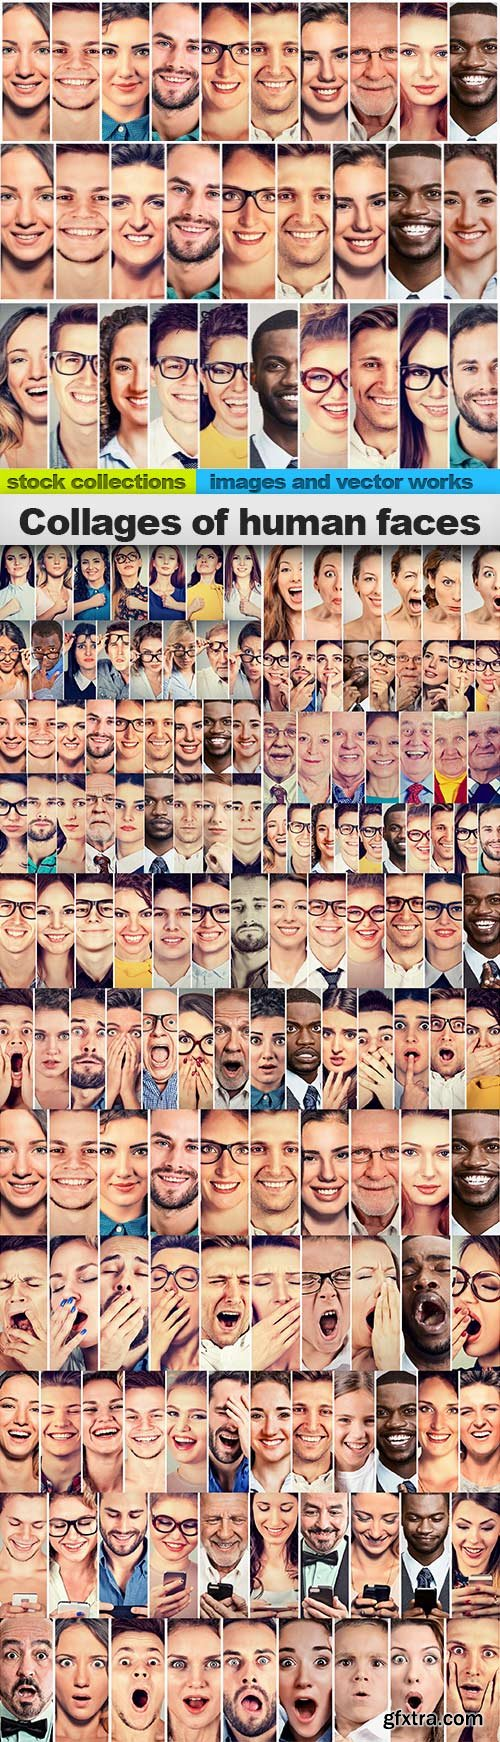 Collages of human faces, 15 x UHQ JPEG